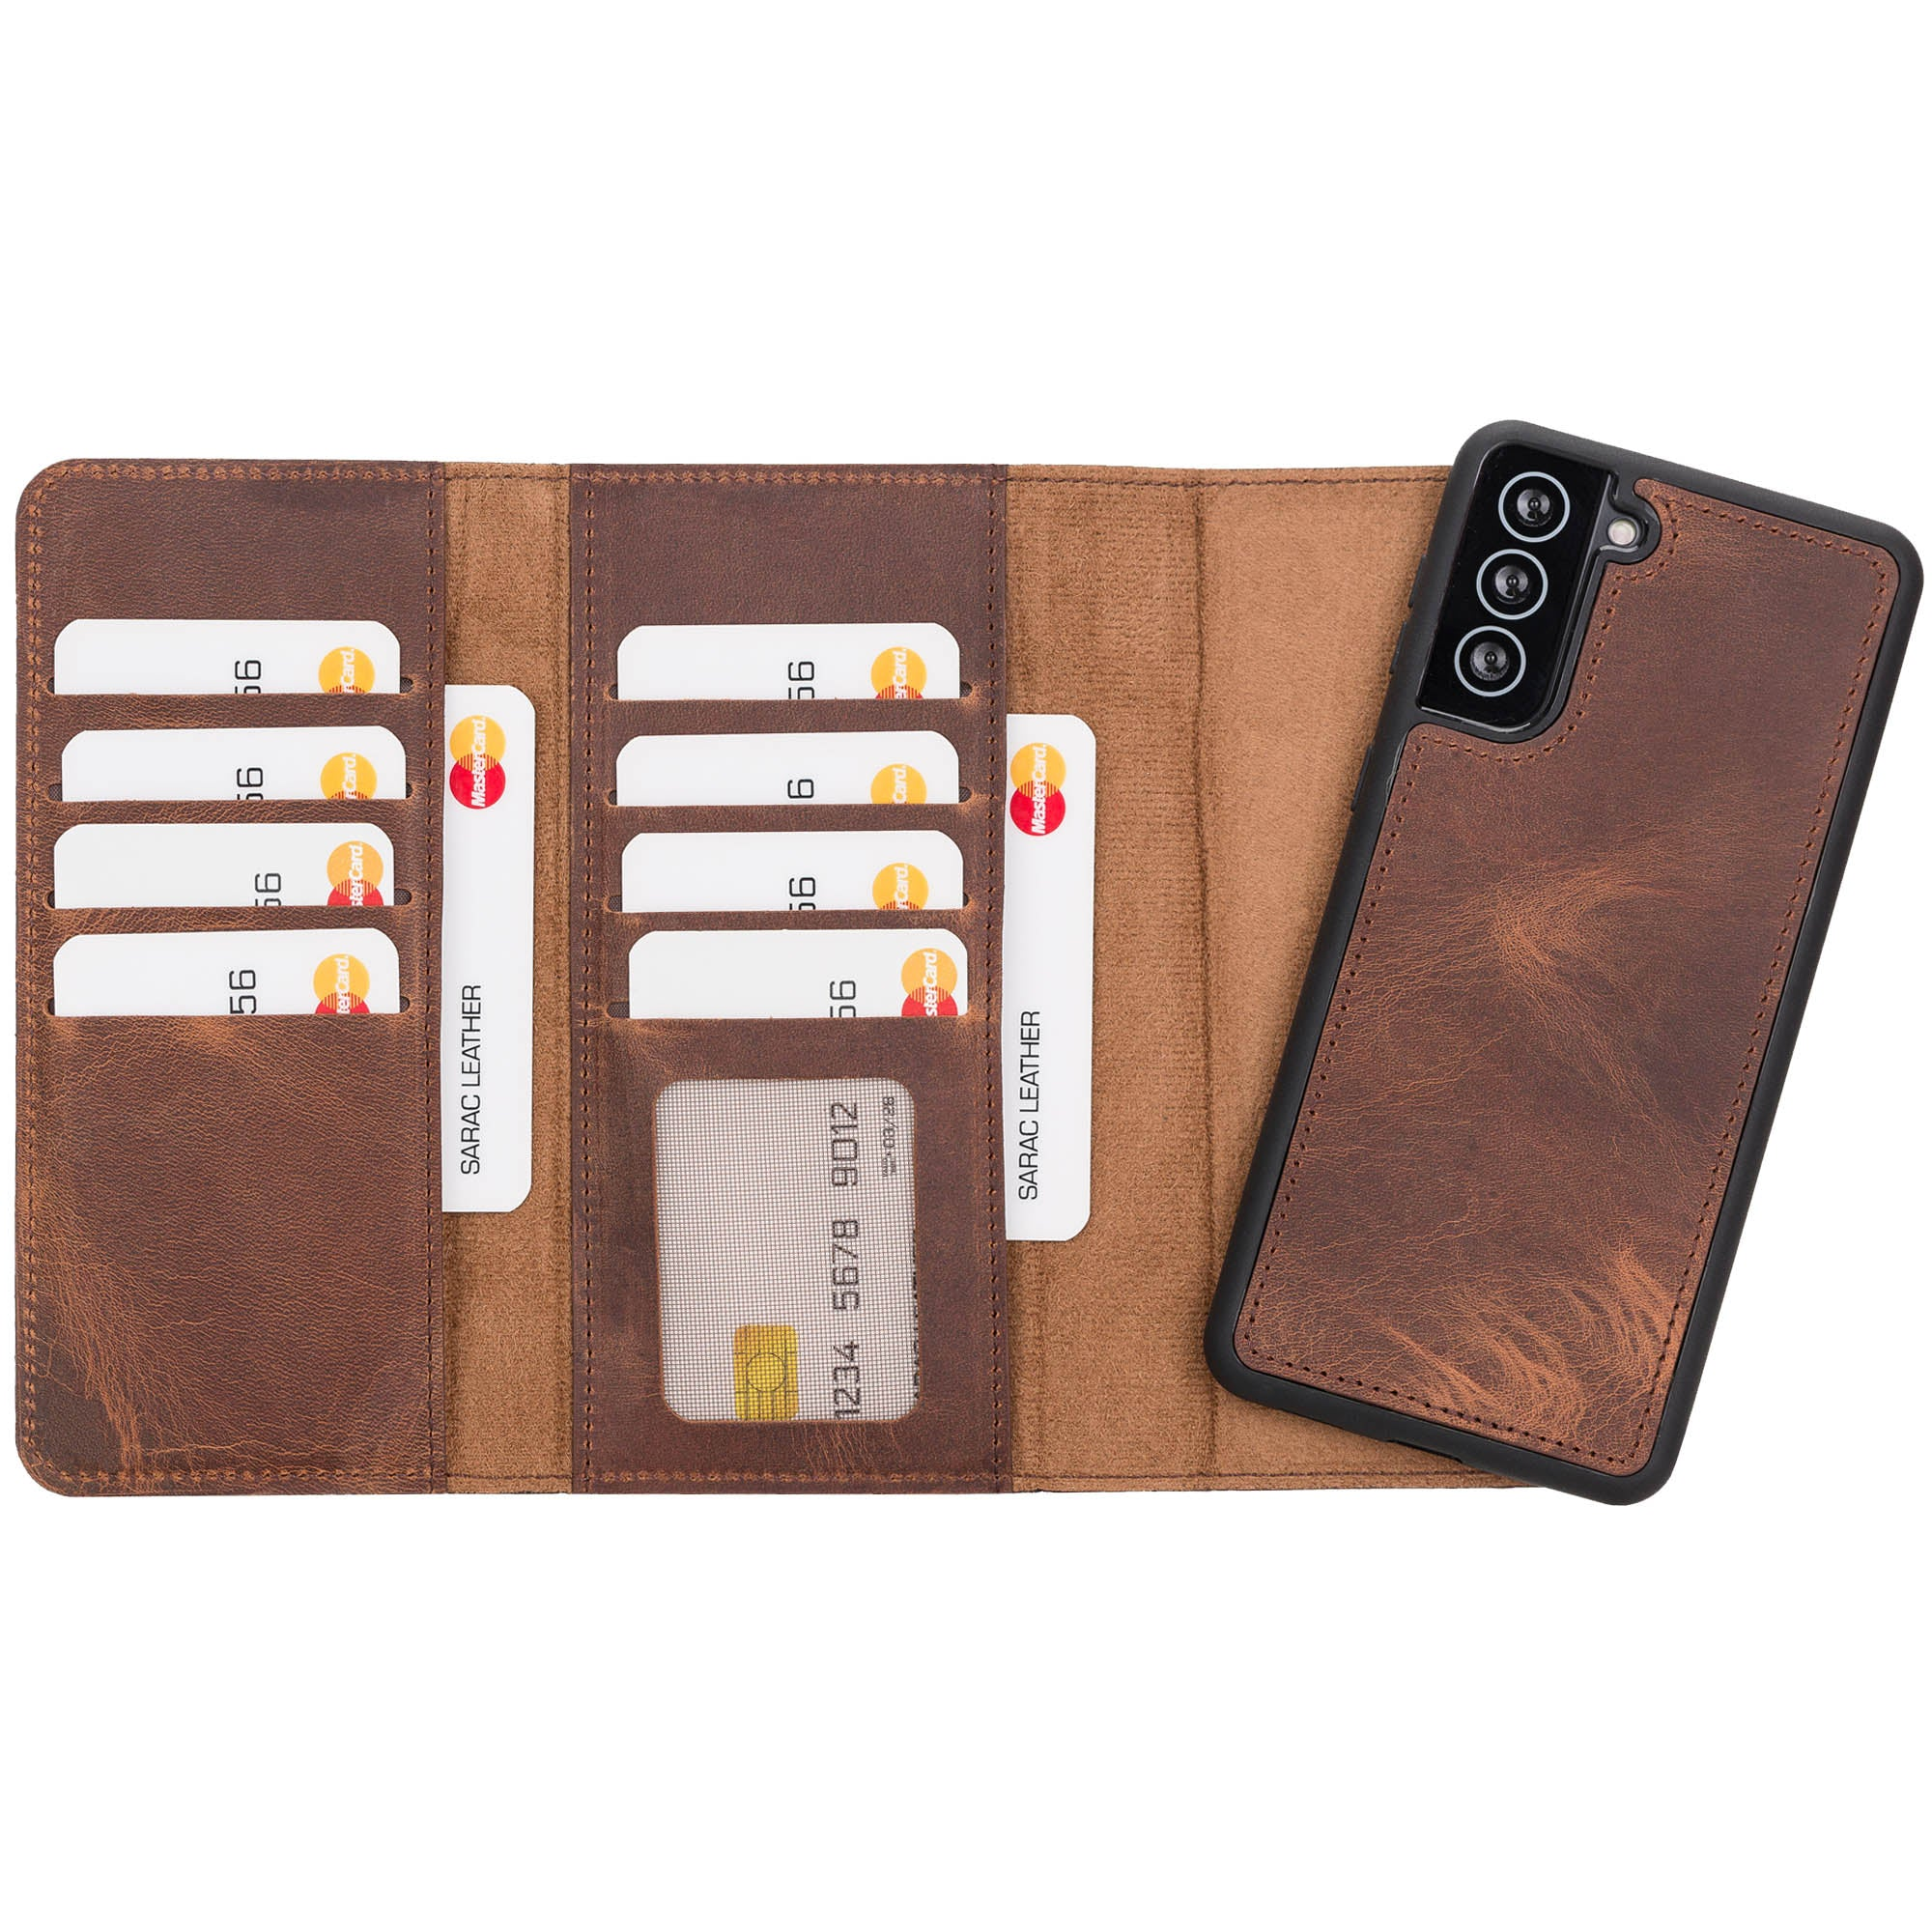 "Santa Magnetic Detachable Leather Wallet Case for Samsung Galaxy S21 Plus 5G (6.7"") - BROWN"